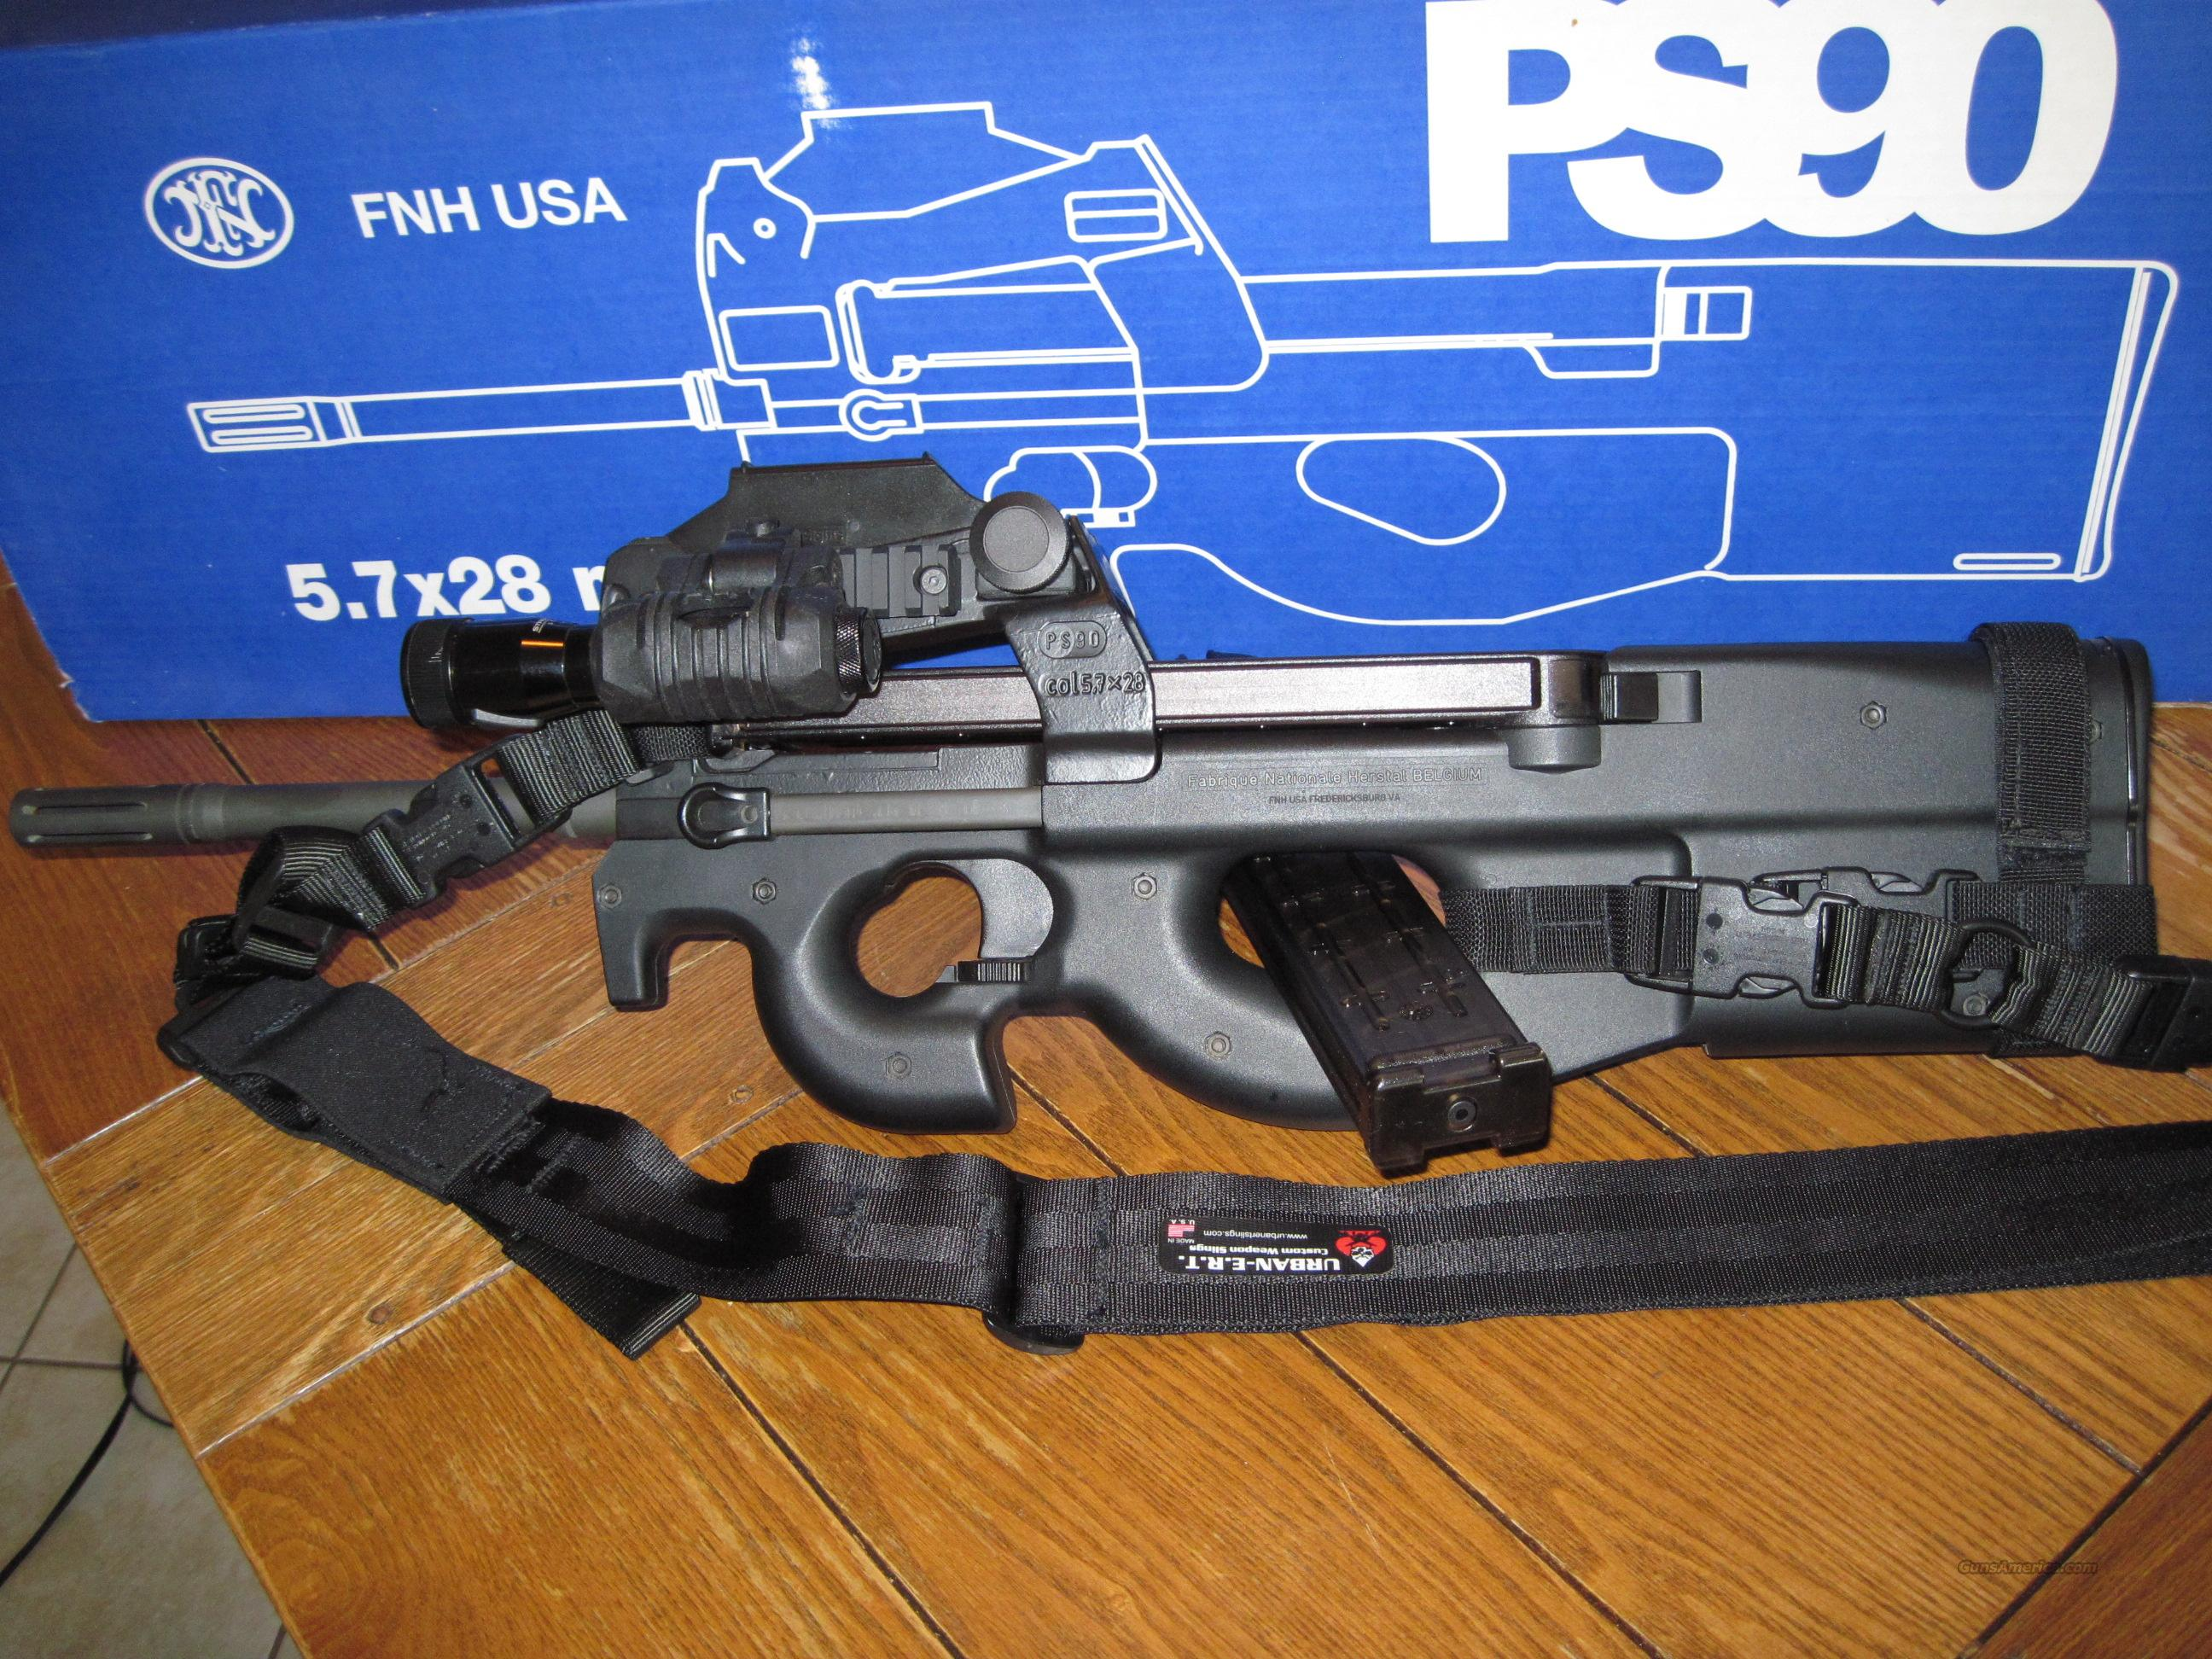 PRICE REDUCED! PS90 for Sale with lots of extras, Gen 2 trigger pack  Guns > Rifles > FNH - Fabrique Nationale (FN) Rifles > Semi-auto > PS90